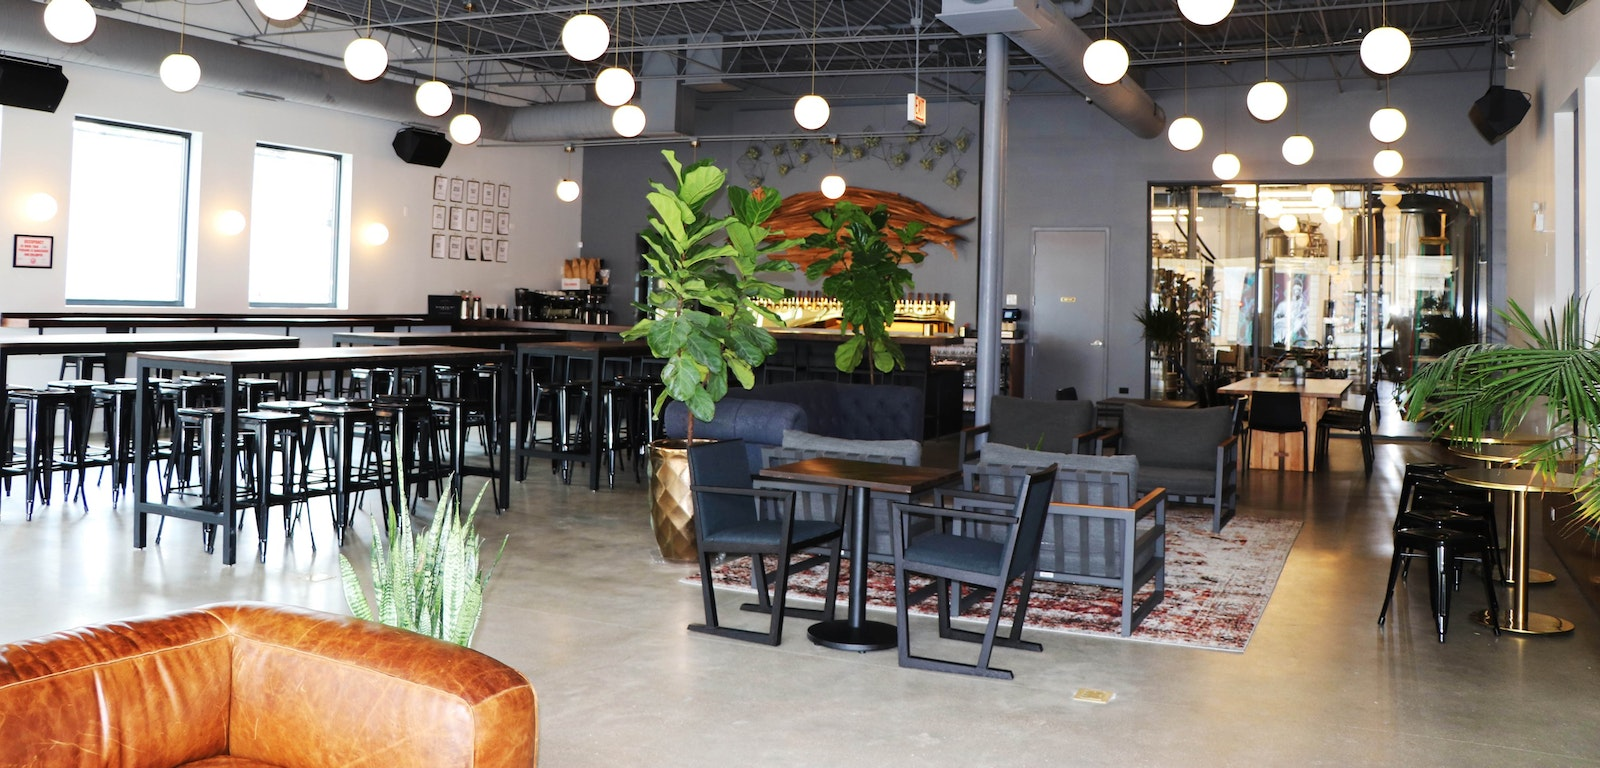 Pilot Project Brewery & Cafe